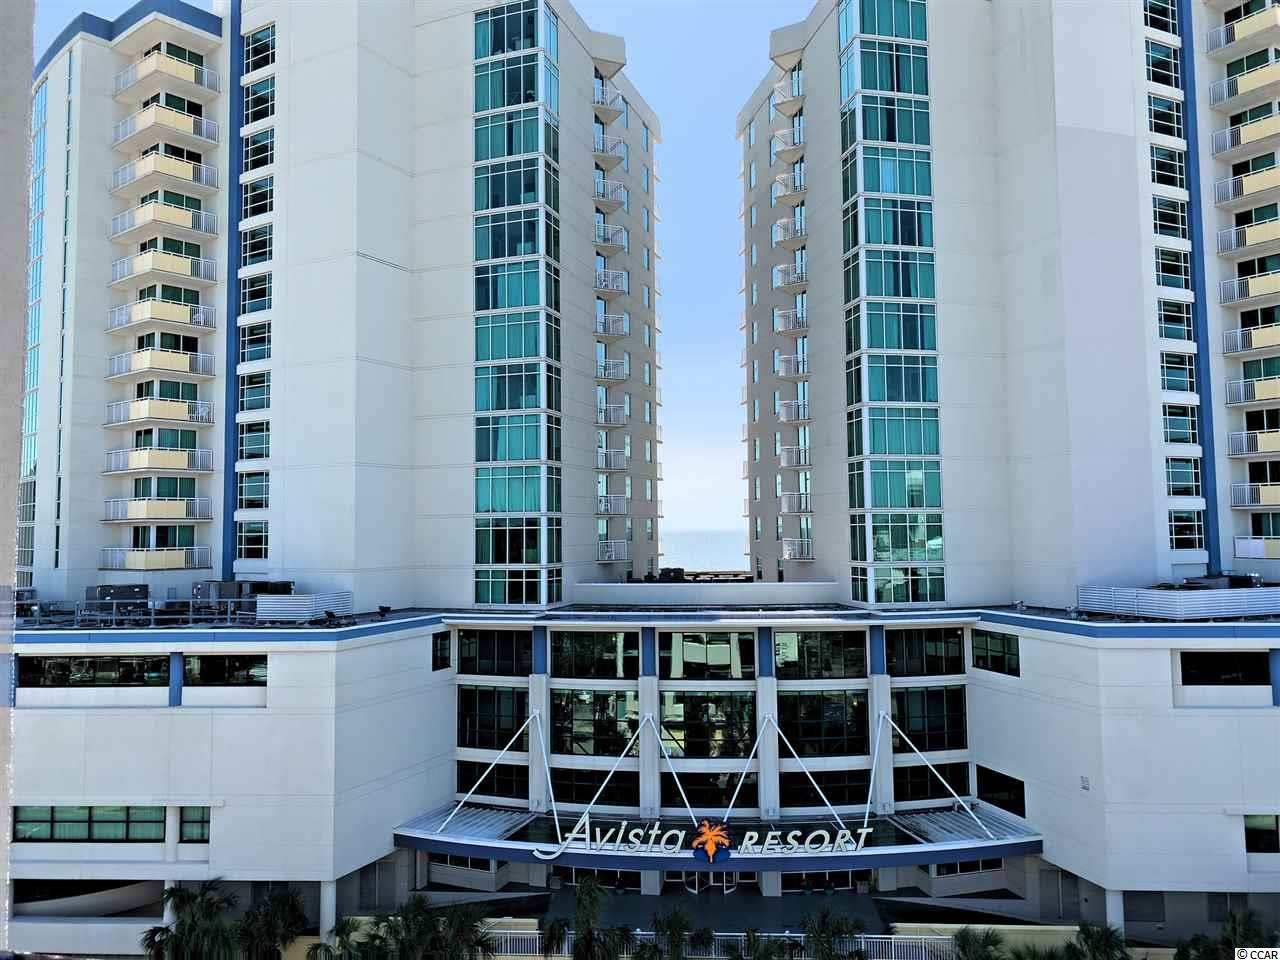 Avista Resort 1Br/1Ba Oceanview (Front Corner) Condo Offers Stunning Views Of The Majestic Atlantic Ocean. Perfectly Situated On The 11Th Floor In The South Tower, The Condo Boasts Unparalleled Views Of The Beach.  The  Unobstructed Southern Coastline Can Be Seen From The Large Private Balcony.  Upgrades In 2018 Include Furniture, Drapes, Kitchen Granite, New Carpet, And Bath Vanity. Fully Equipped Kitchen, Bosch Washer And Separate Dryer, Spacious Floor Plan & Large Balcony. New Dinette Table Purchased At The End Of 2019. New Bedroom Full Length Mirror And Bedding For Murphy Bed And King Sized Bed Purchased In 2020.  Great Rental Property, Primary Or Second Home. Low Hoa Fee Which Includes Water, Sewer, Trash Pick Up,Cable, Internet, Electricity And All Insurances.  Avista Resort Offers: Climate Controlled Corridors, Indoor/Outdoor Pools, Hot Tubs, Lazy River, State Of The Art Fitness Center, Snack Bar, On-Site Restaurant & Lounge/Bars! Close To Main Street In North Myrtle Beach So You Are In Walking Distance To Shopping, Hoskin's Restaurant (A Local Favorite), Mclean Park, Harolds, Ducks And Sky Bar.